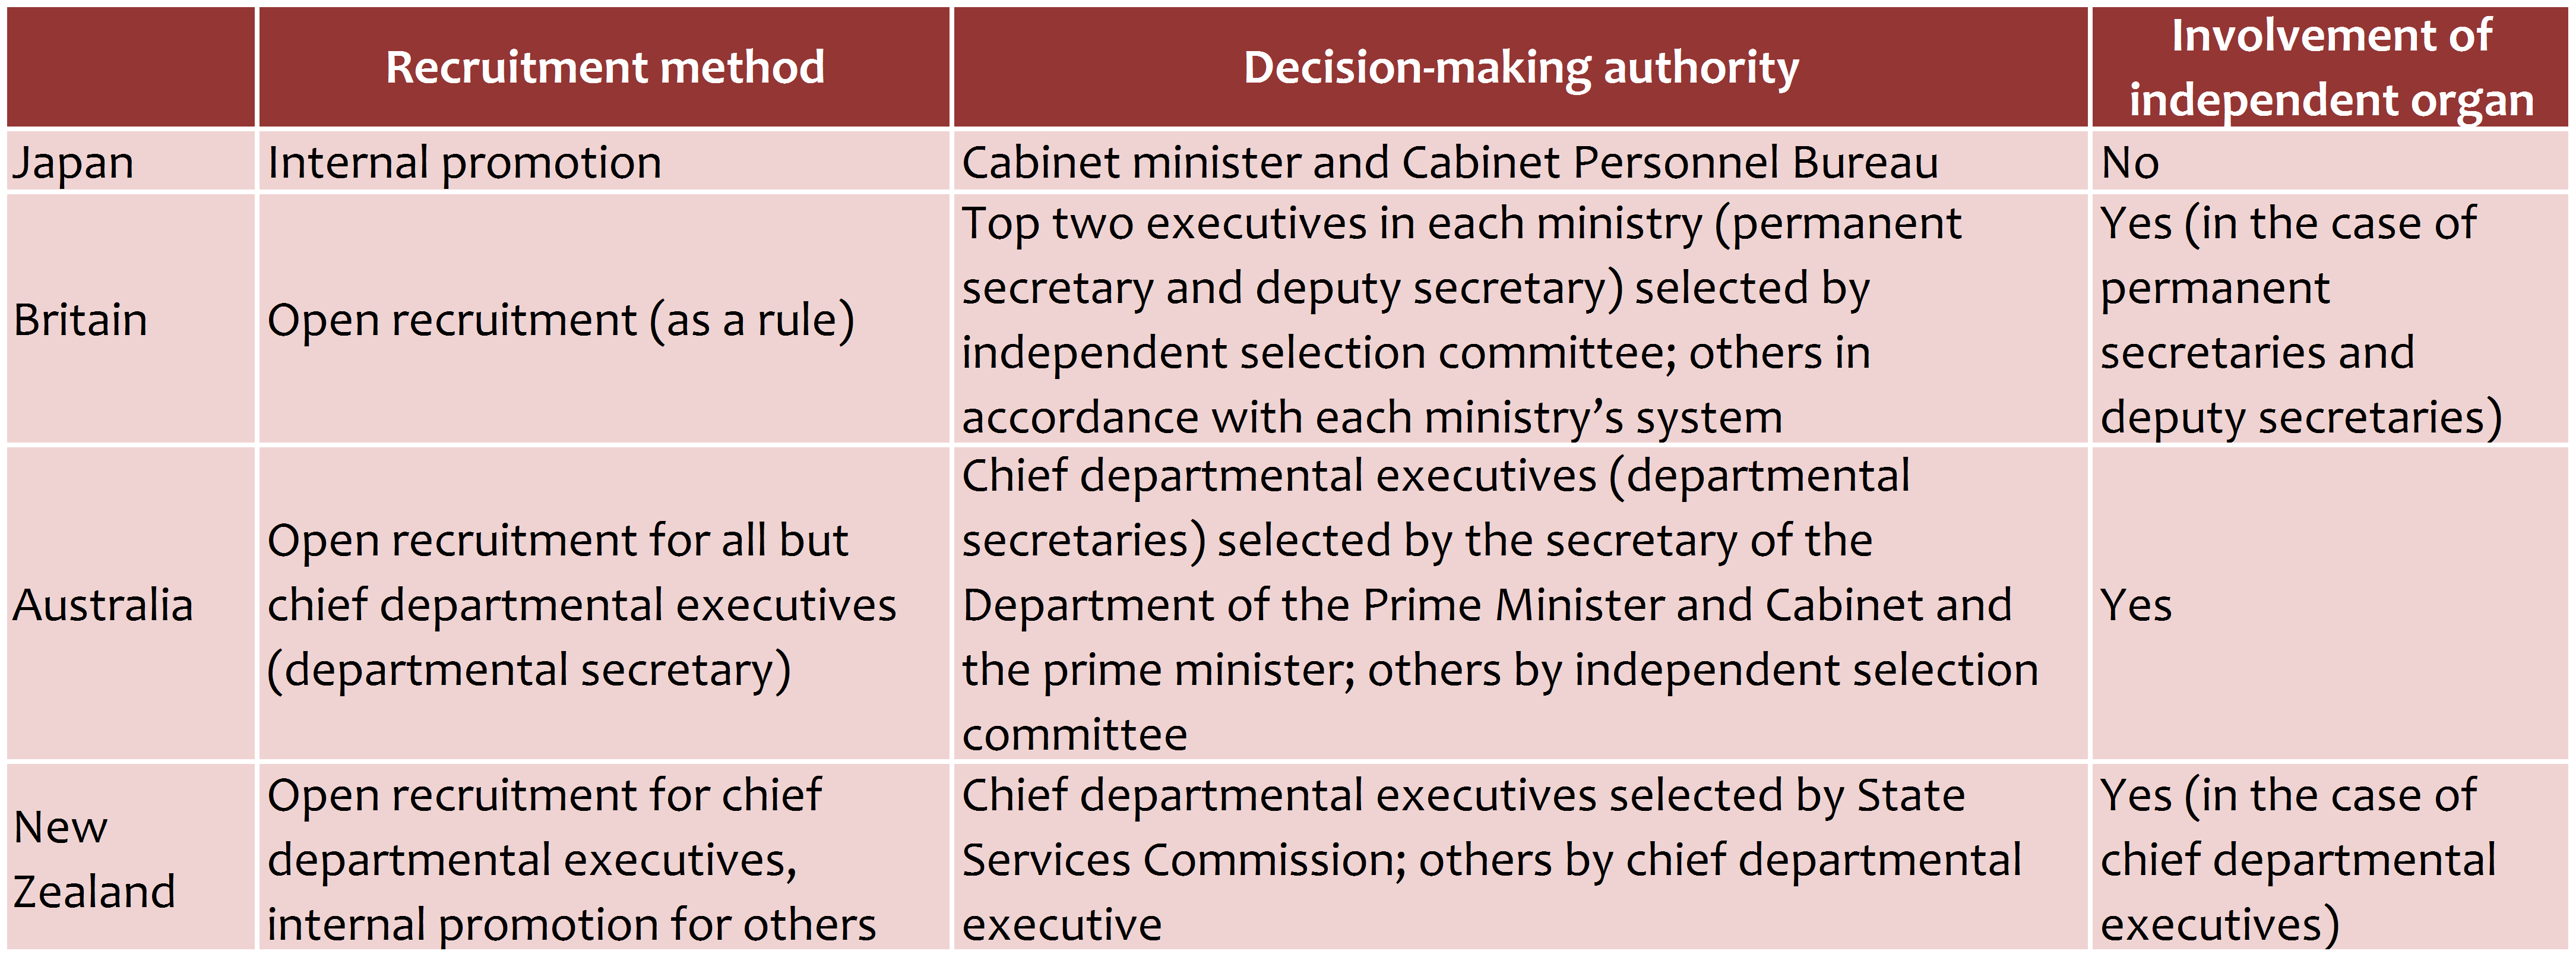 Senior Civil Service Appointments in Selected Parliamentary Democracies